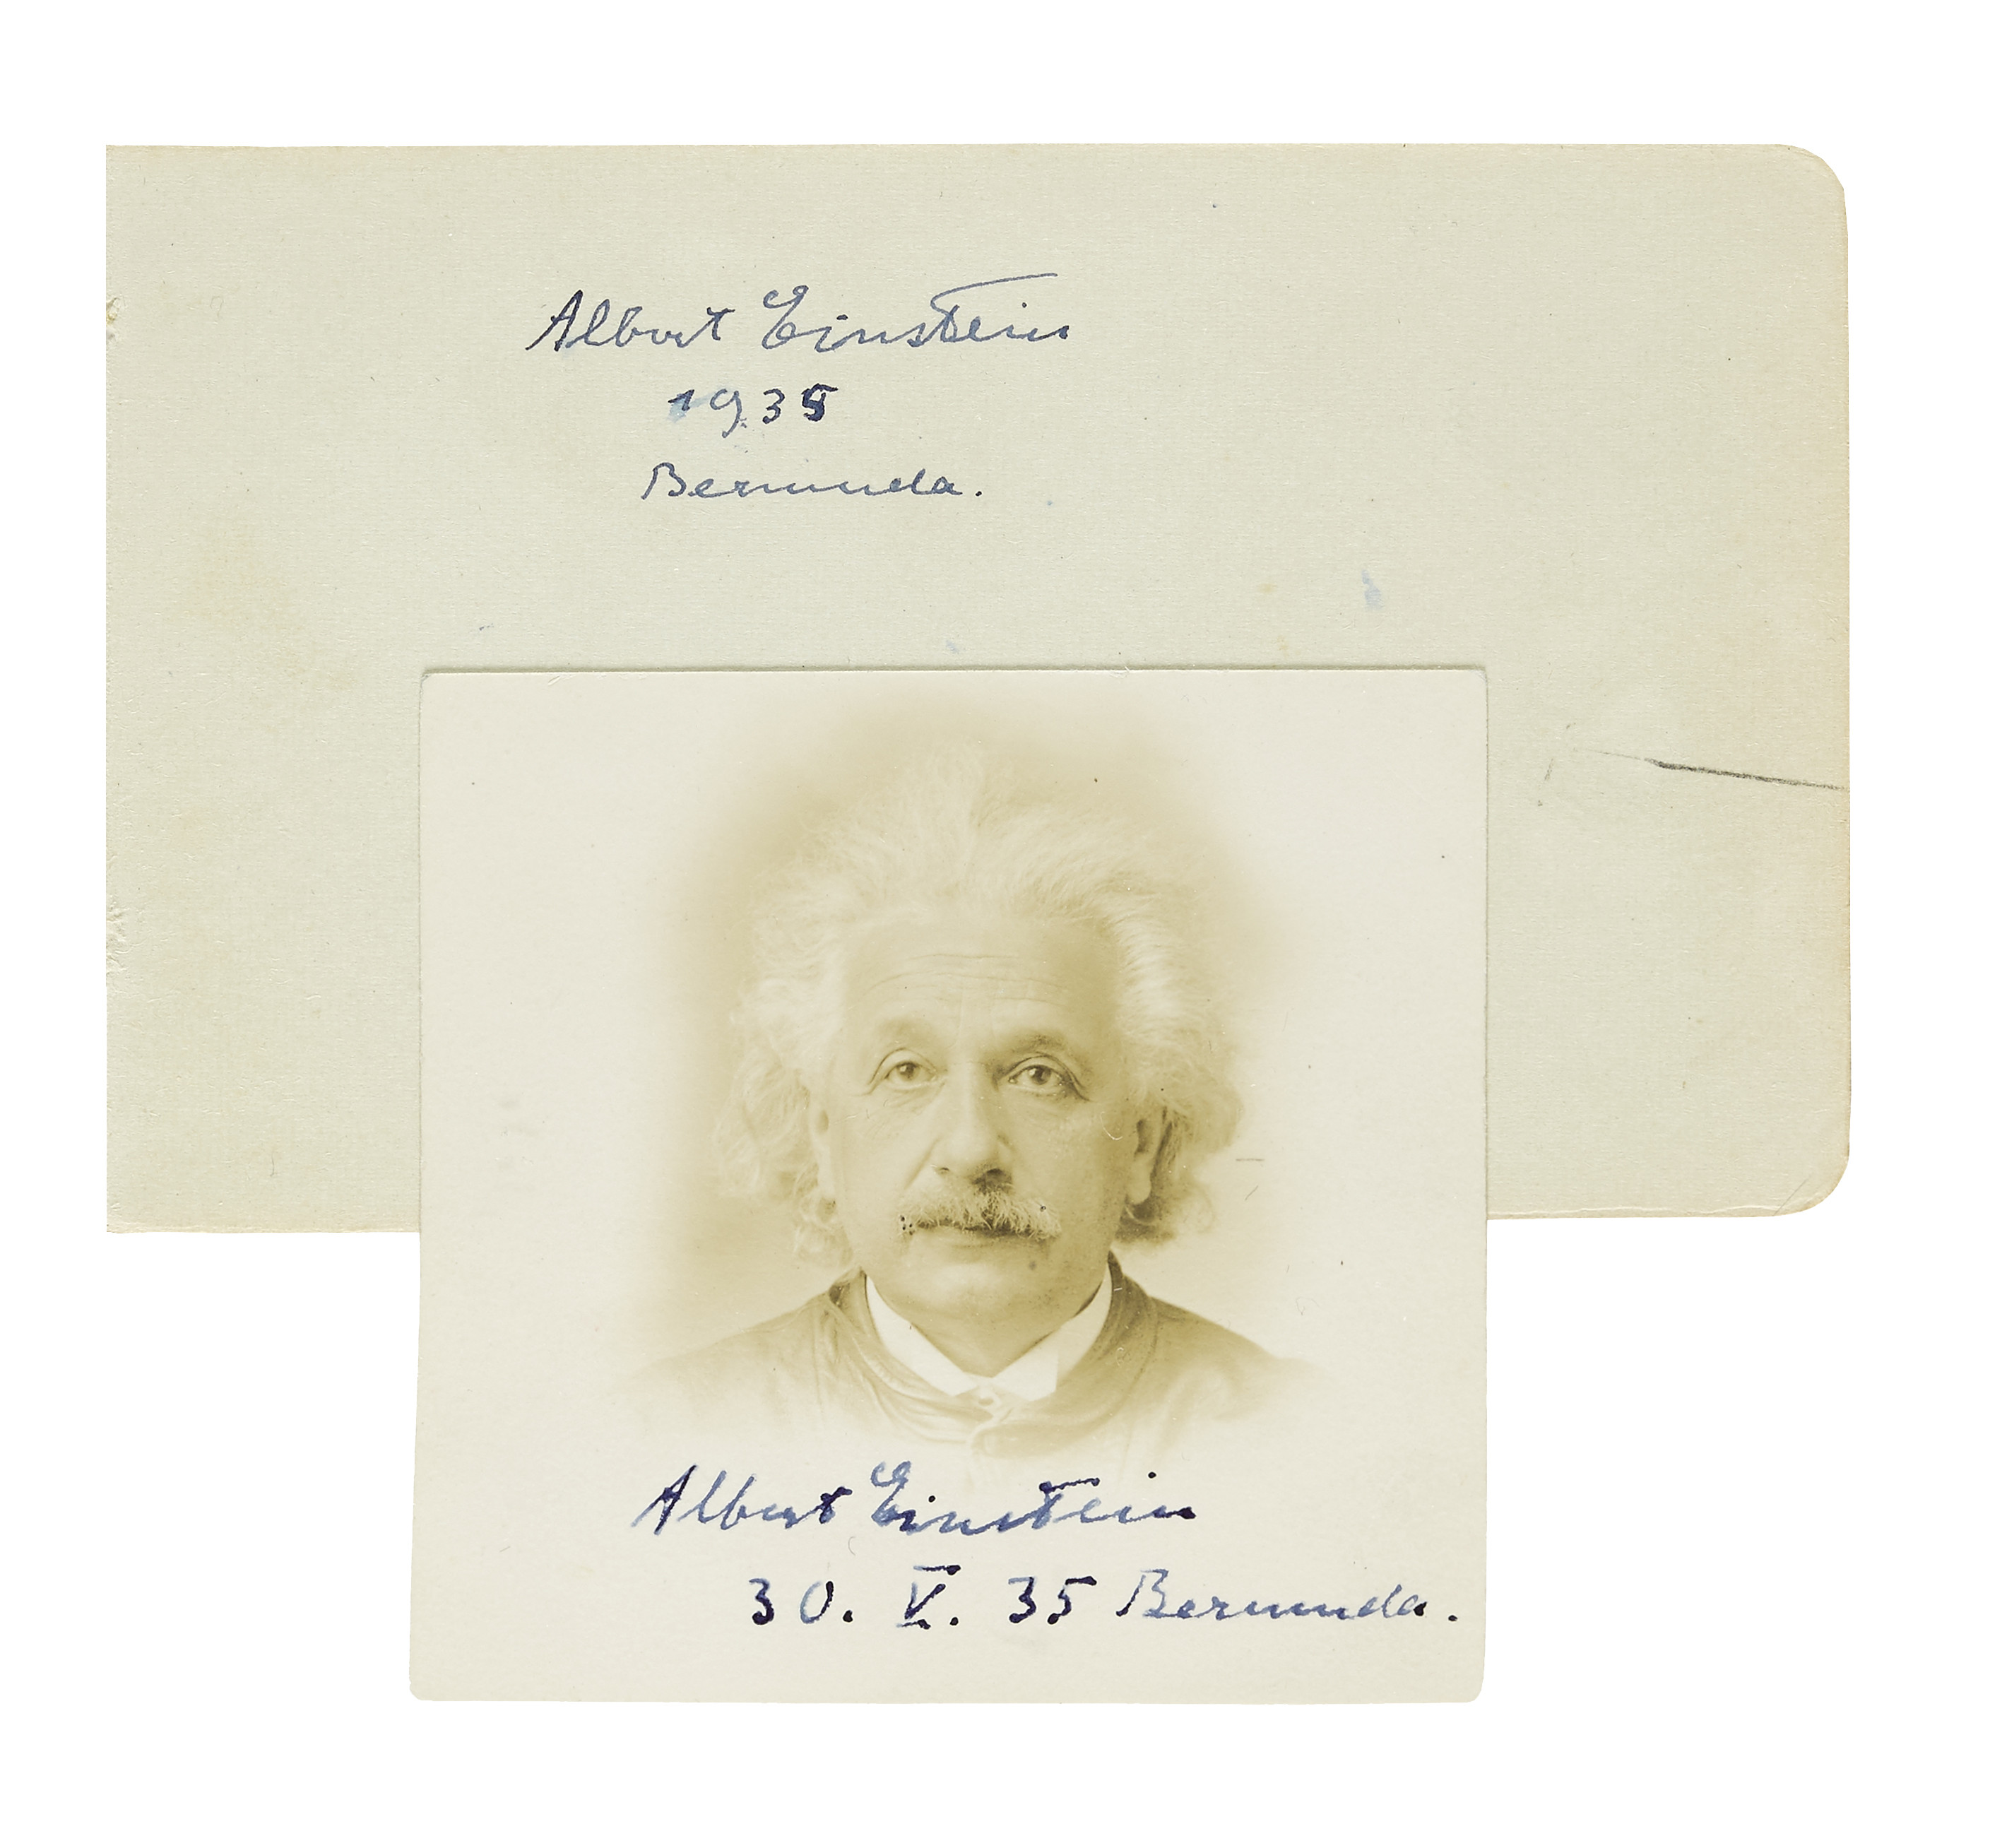 A passport photograph of Albert Einstein, signed and dated May 30, 1935, along with a piece of paper signed and dated by Einstein and featuring a brief goodbye note in German from Einstein's son-in-law, Dmitri Marianoff.